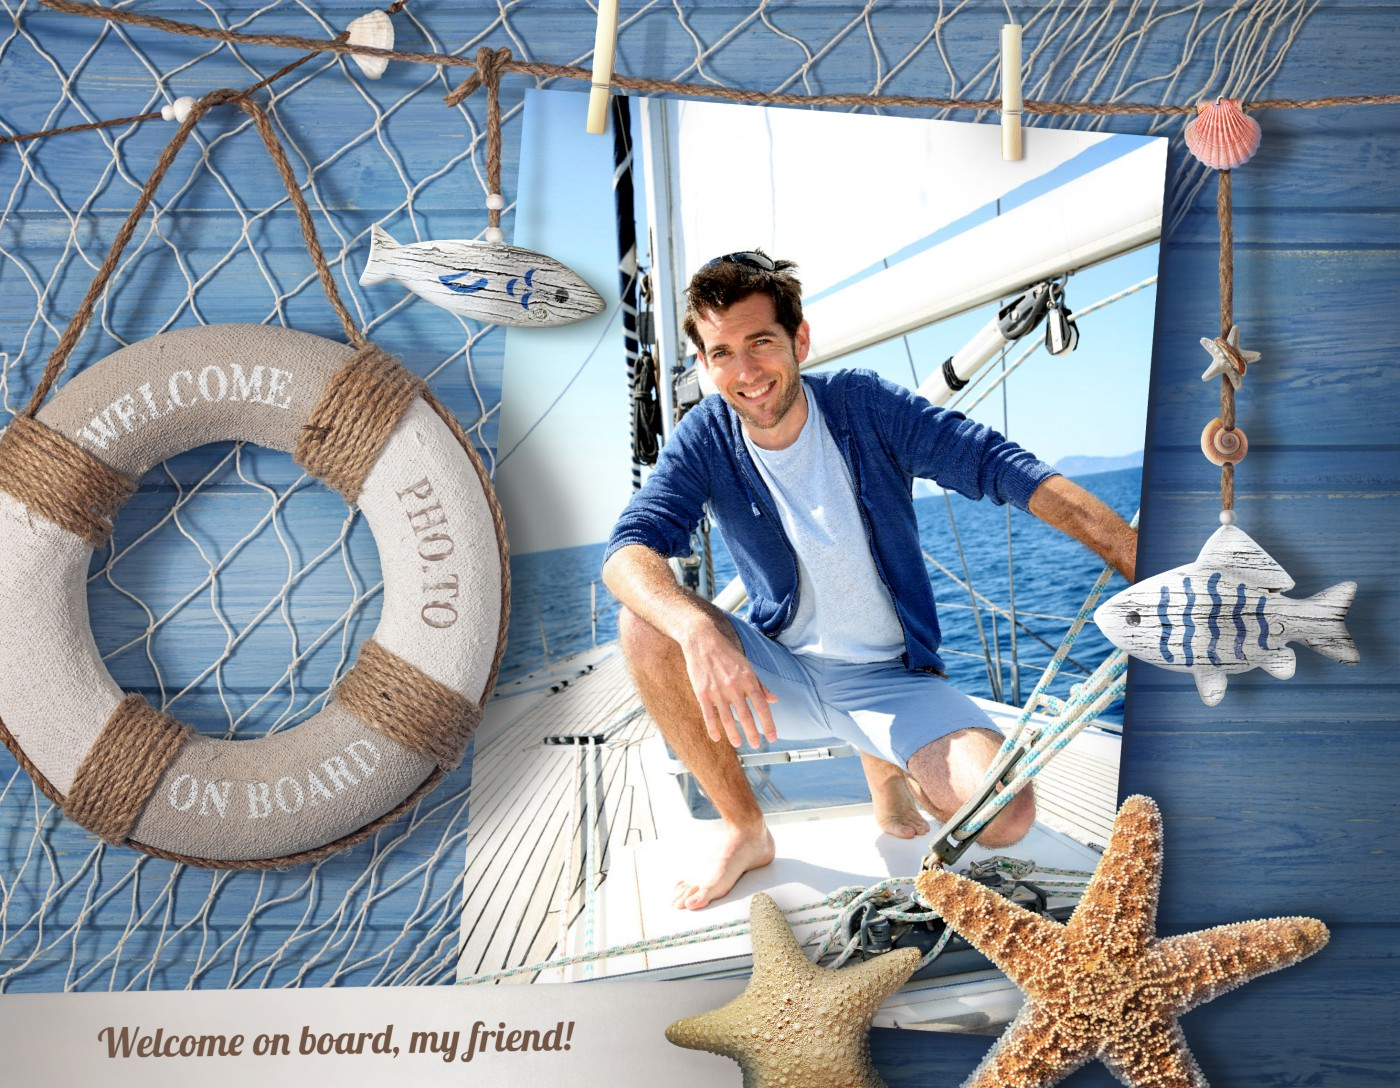 Nautical photo frame is a perfect decoration for vacation memories.